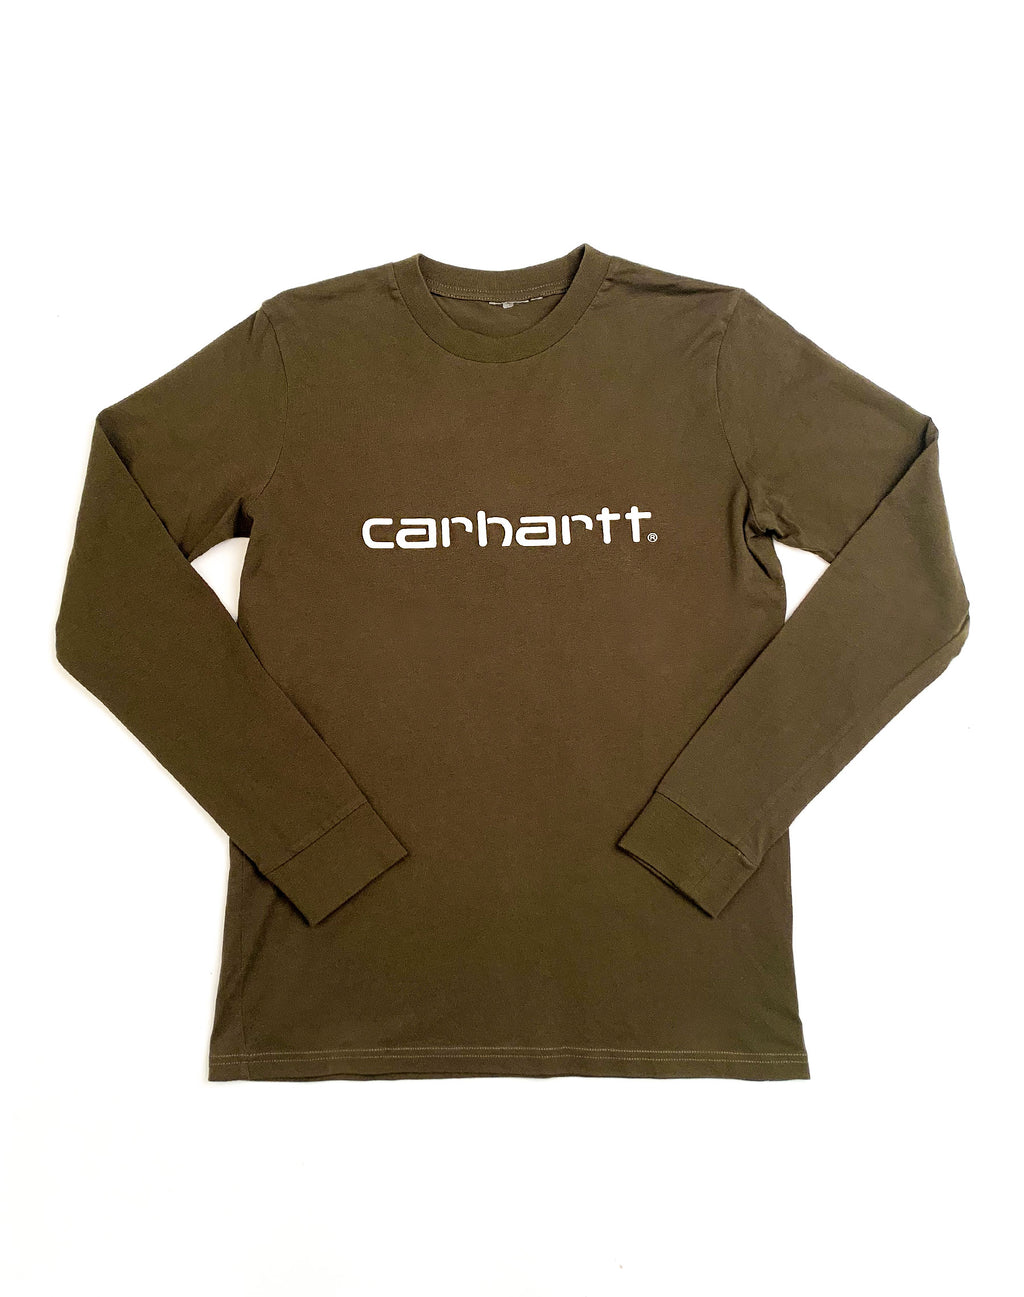 CARHARTT KHAKI LONG SLEEVE T-SHIRT